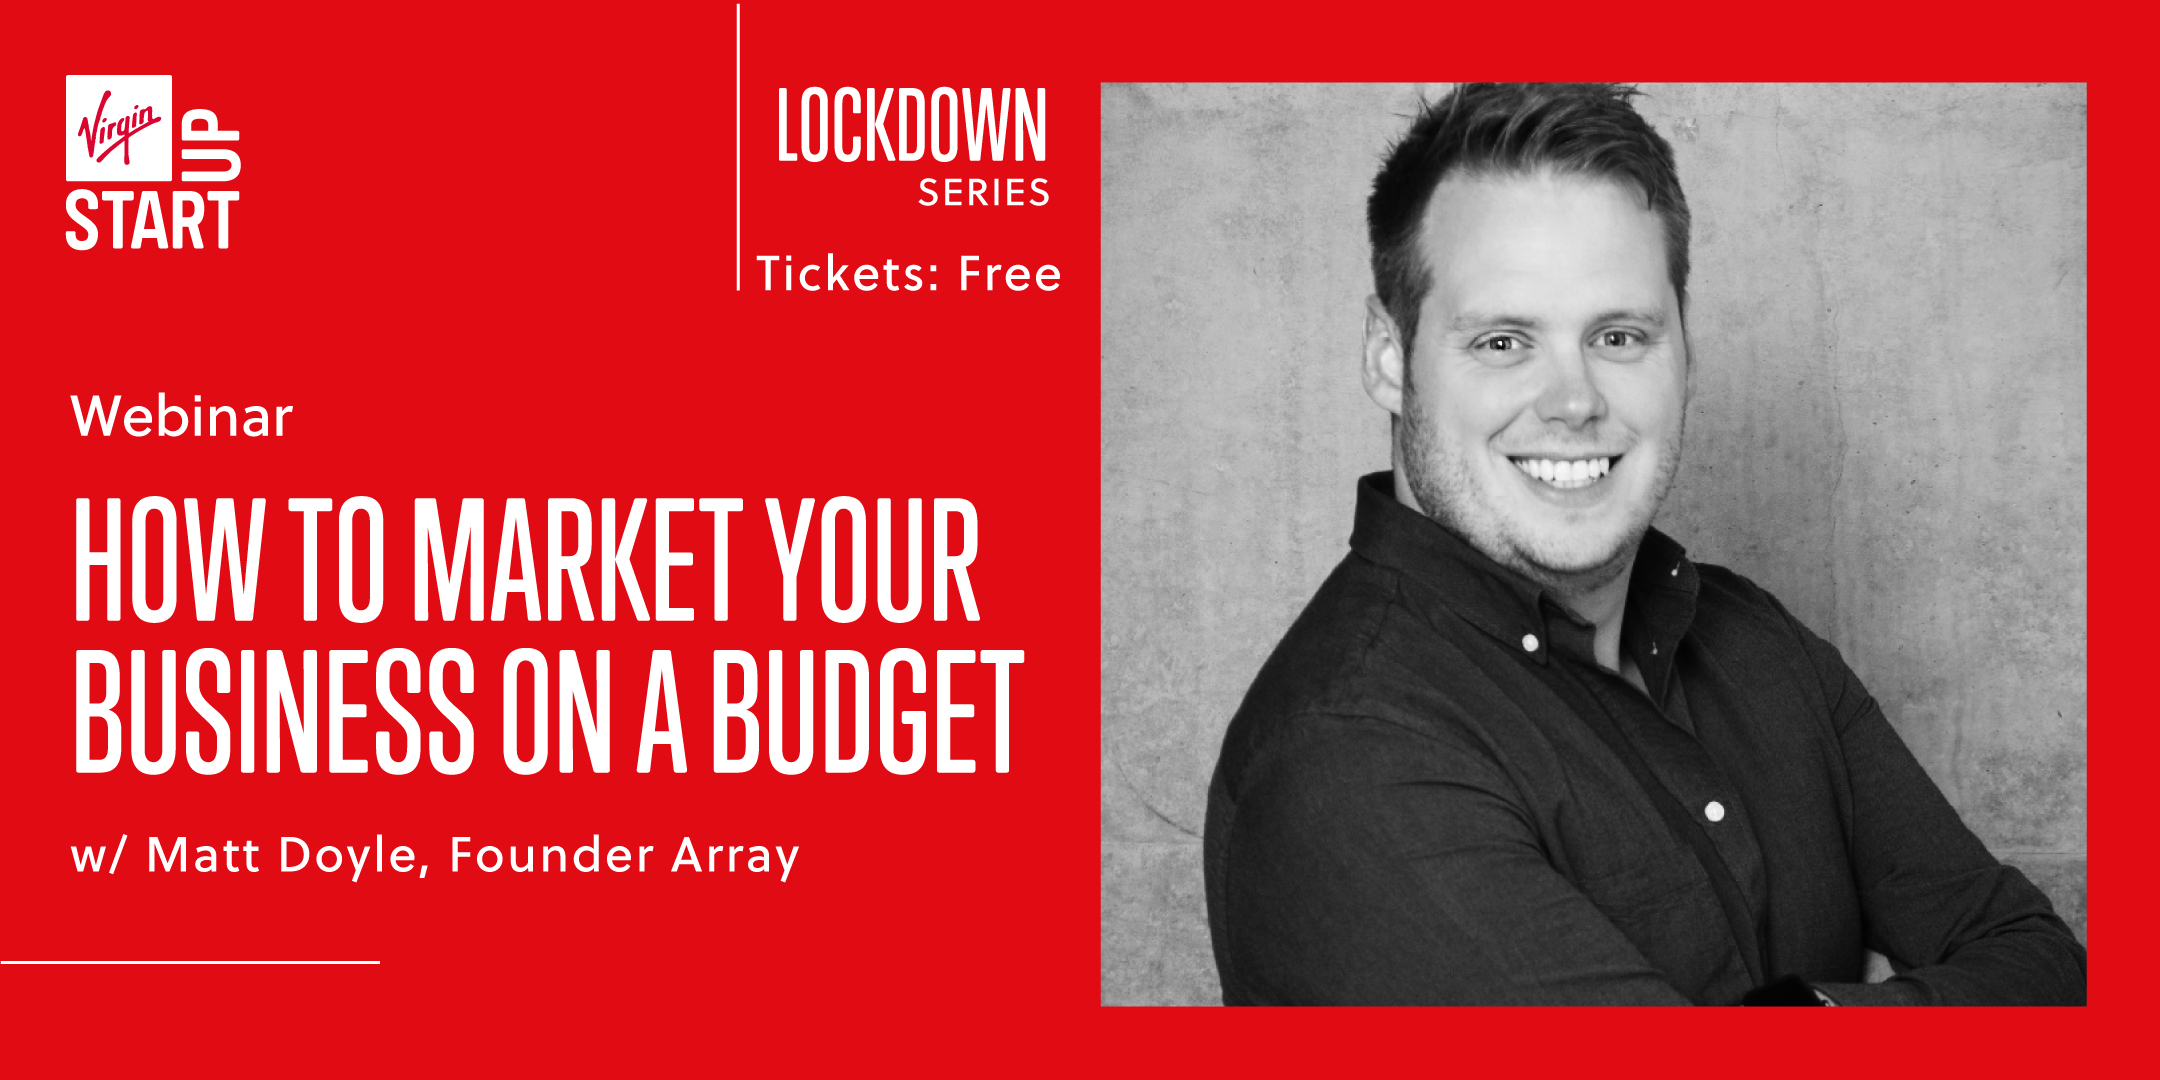 How to market your business on a budget webinar